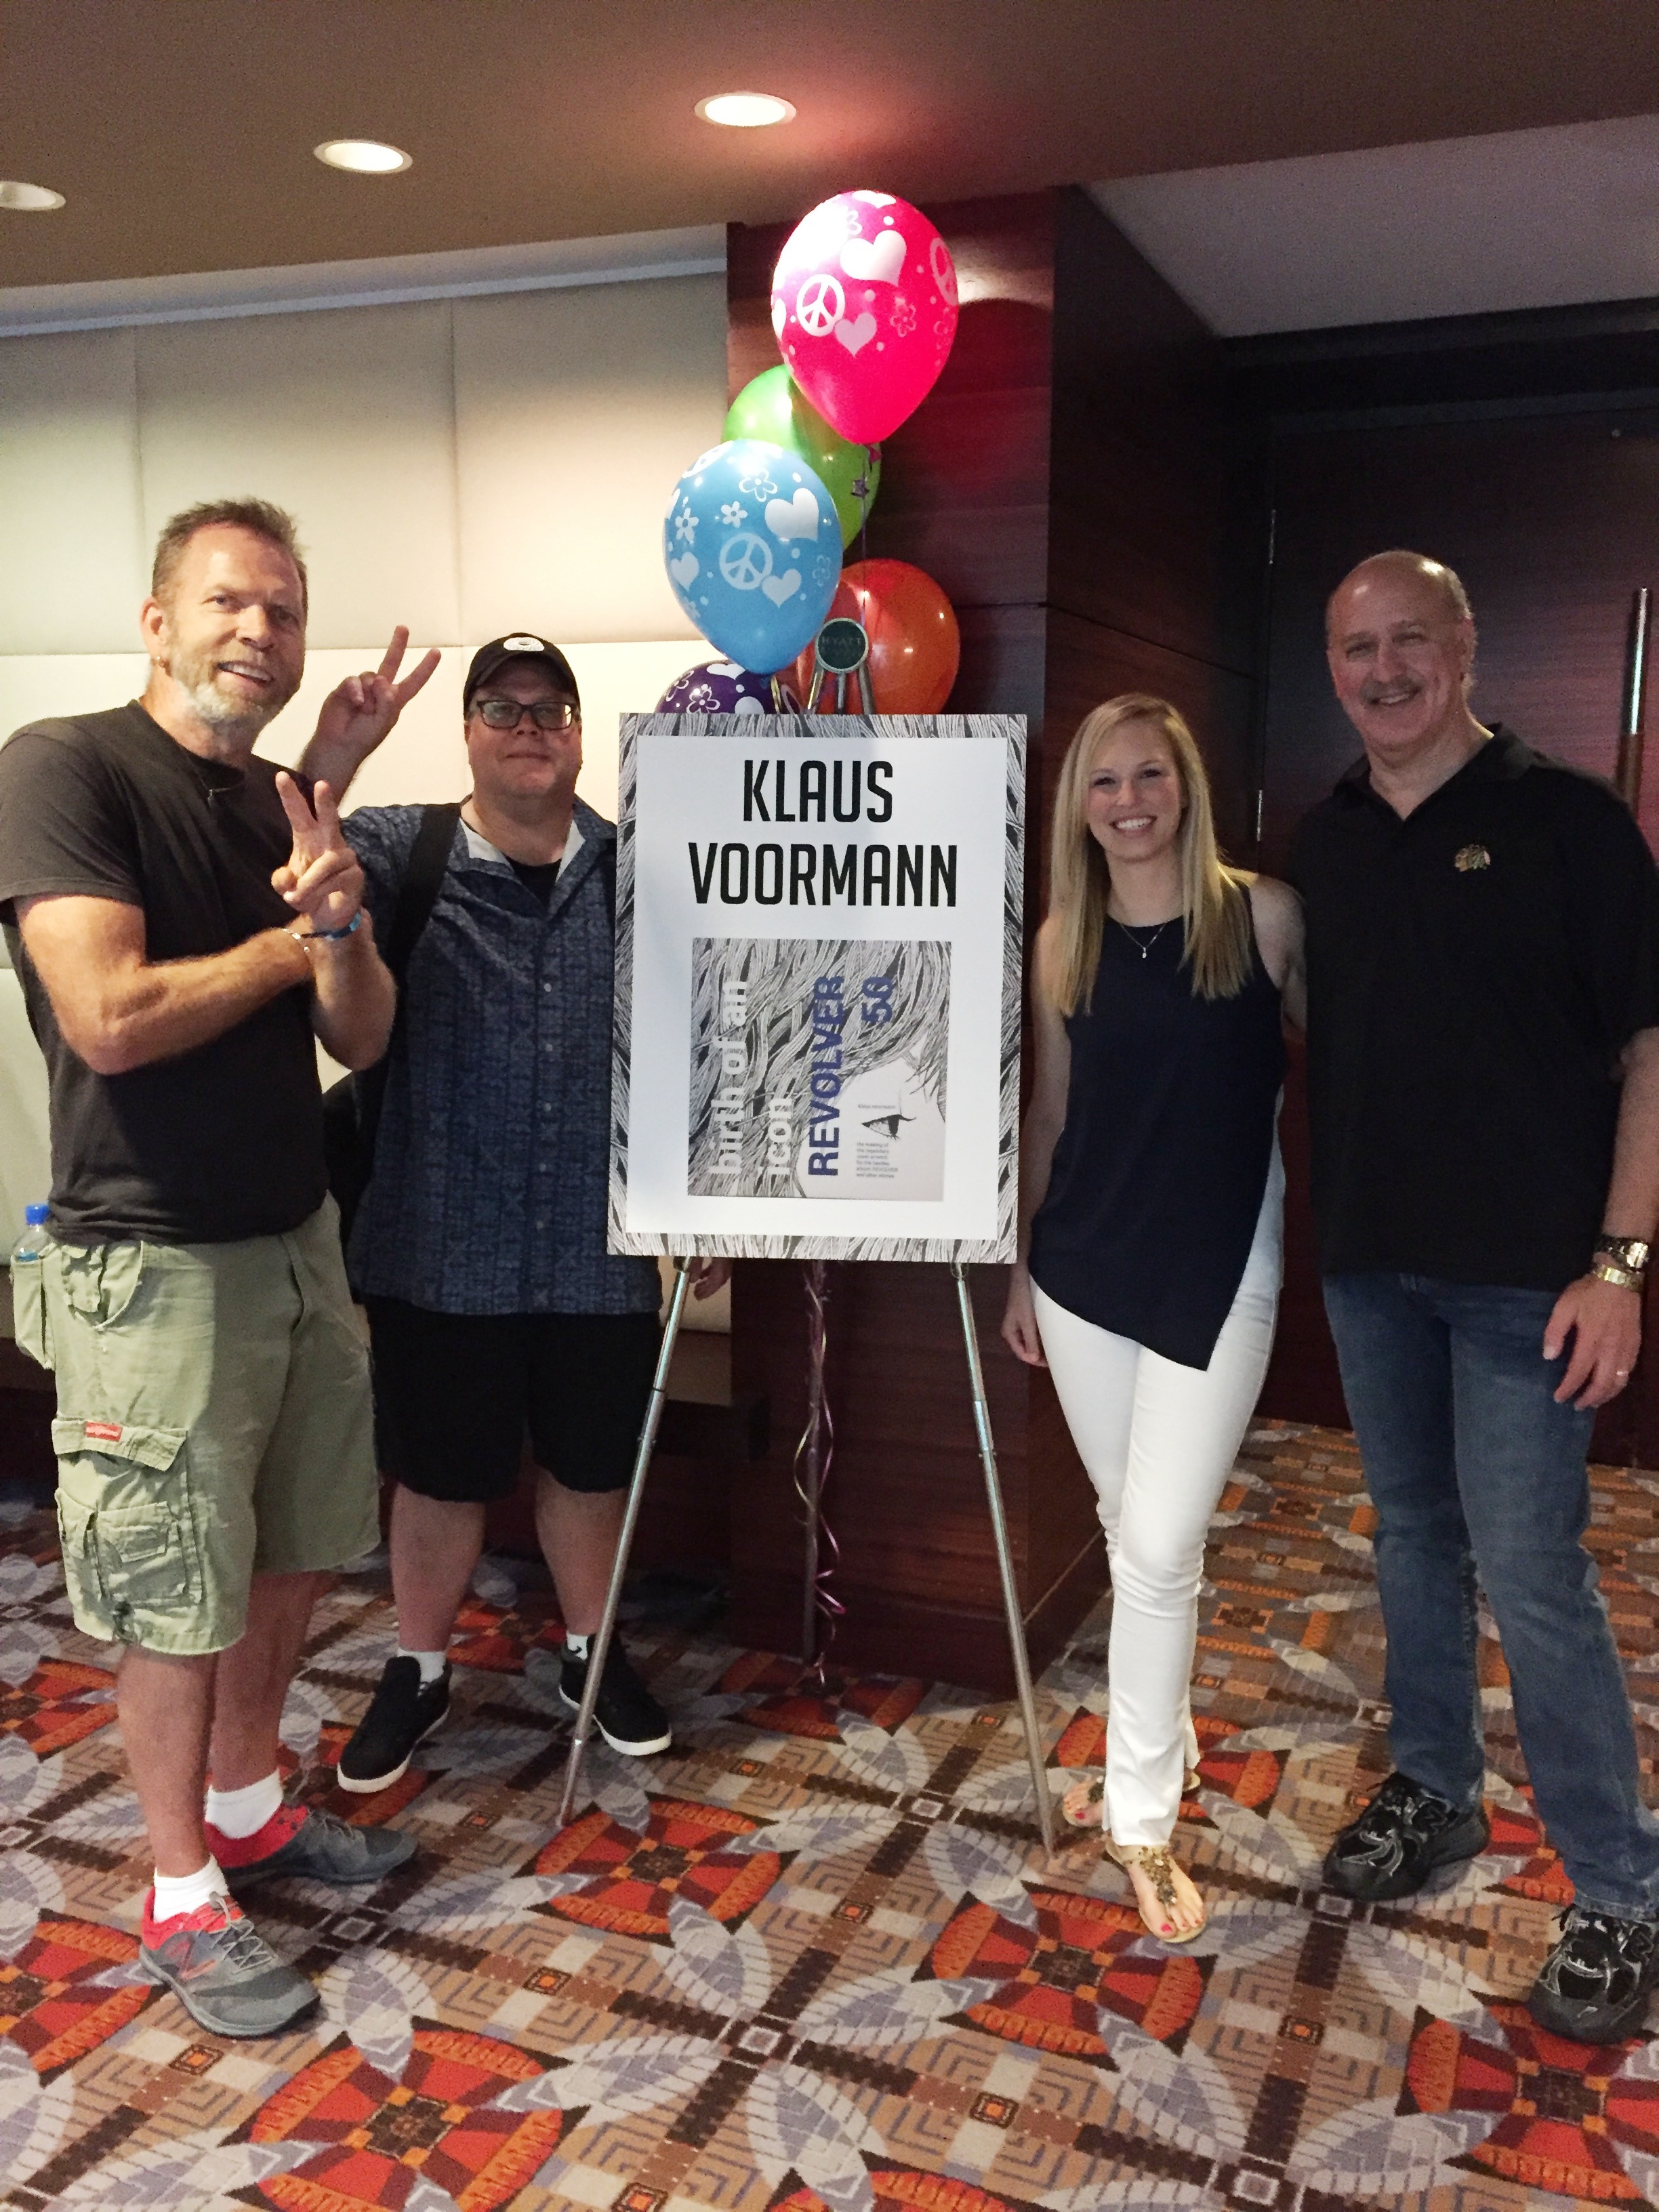 Jay, Gary, Becca and Jim at the Klaus Vorrmann book premier